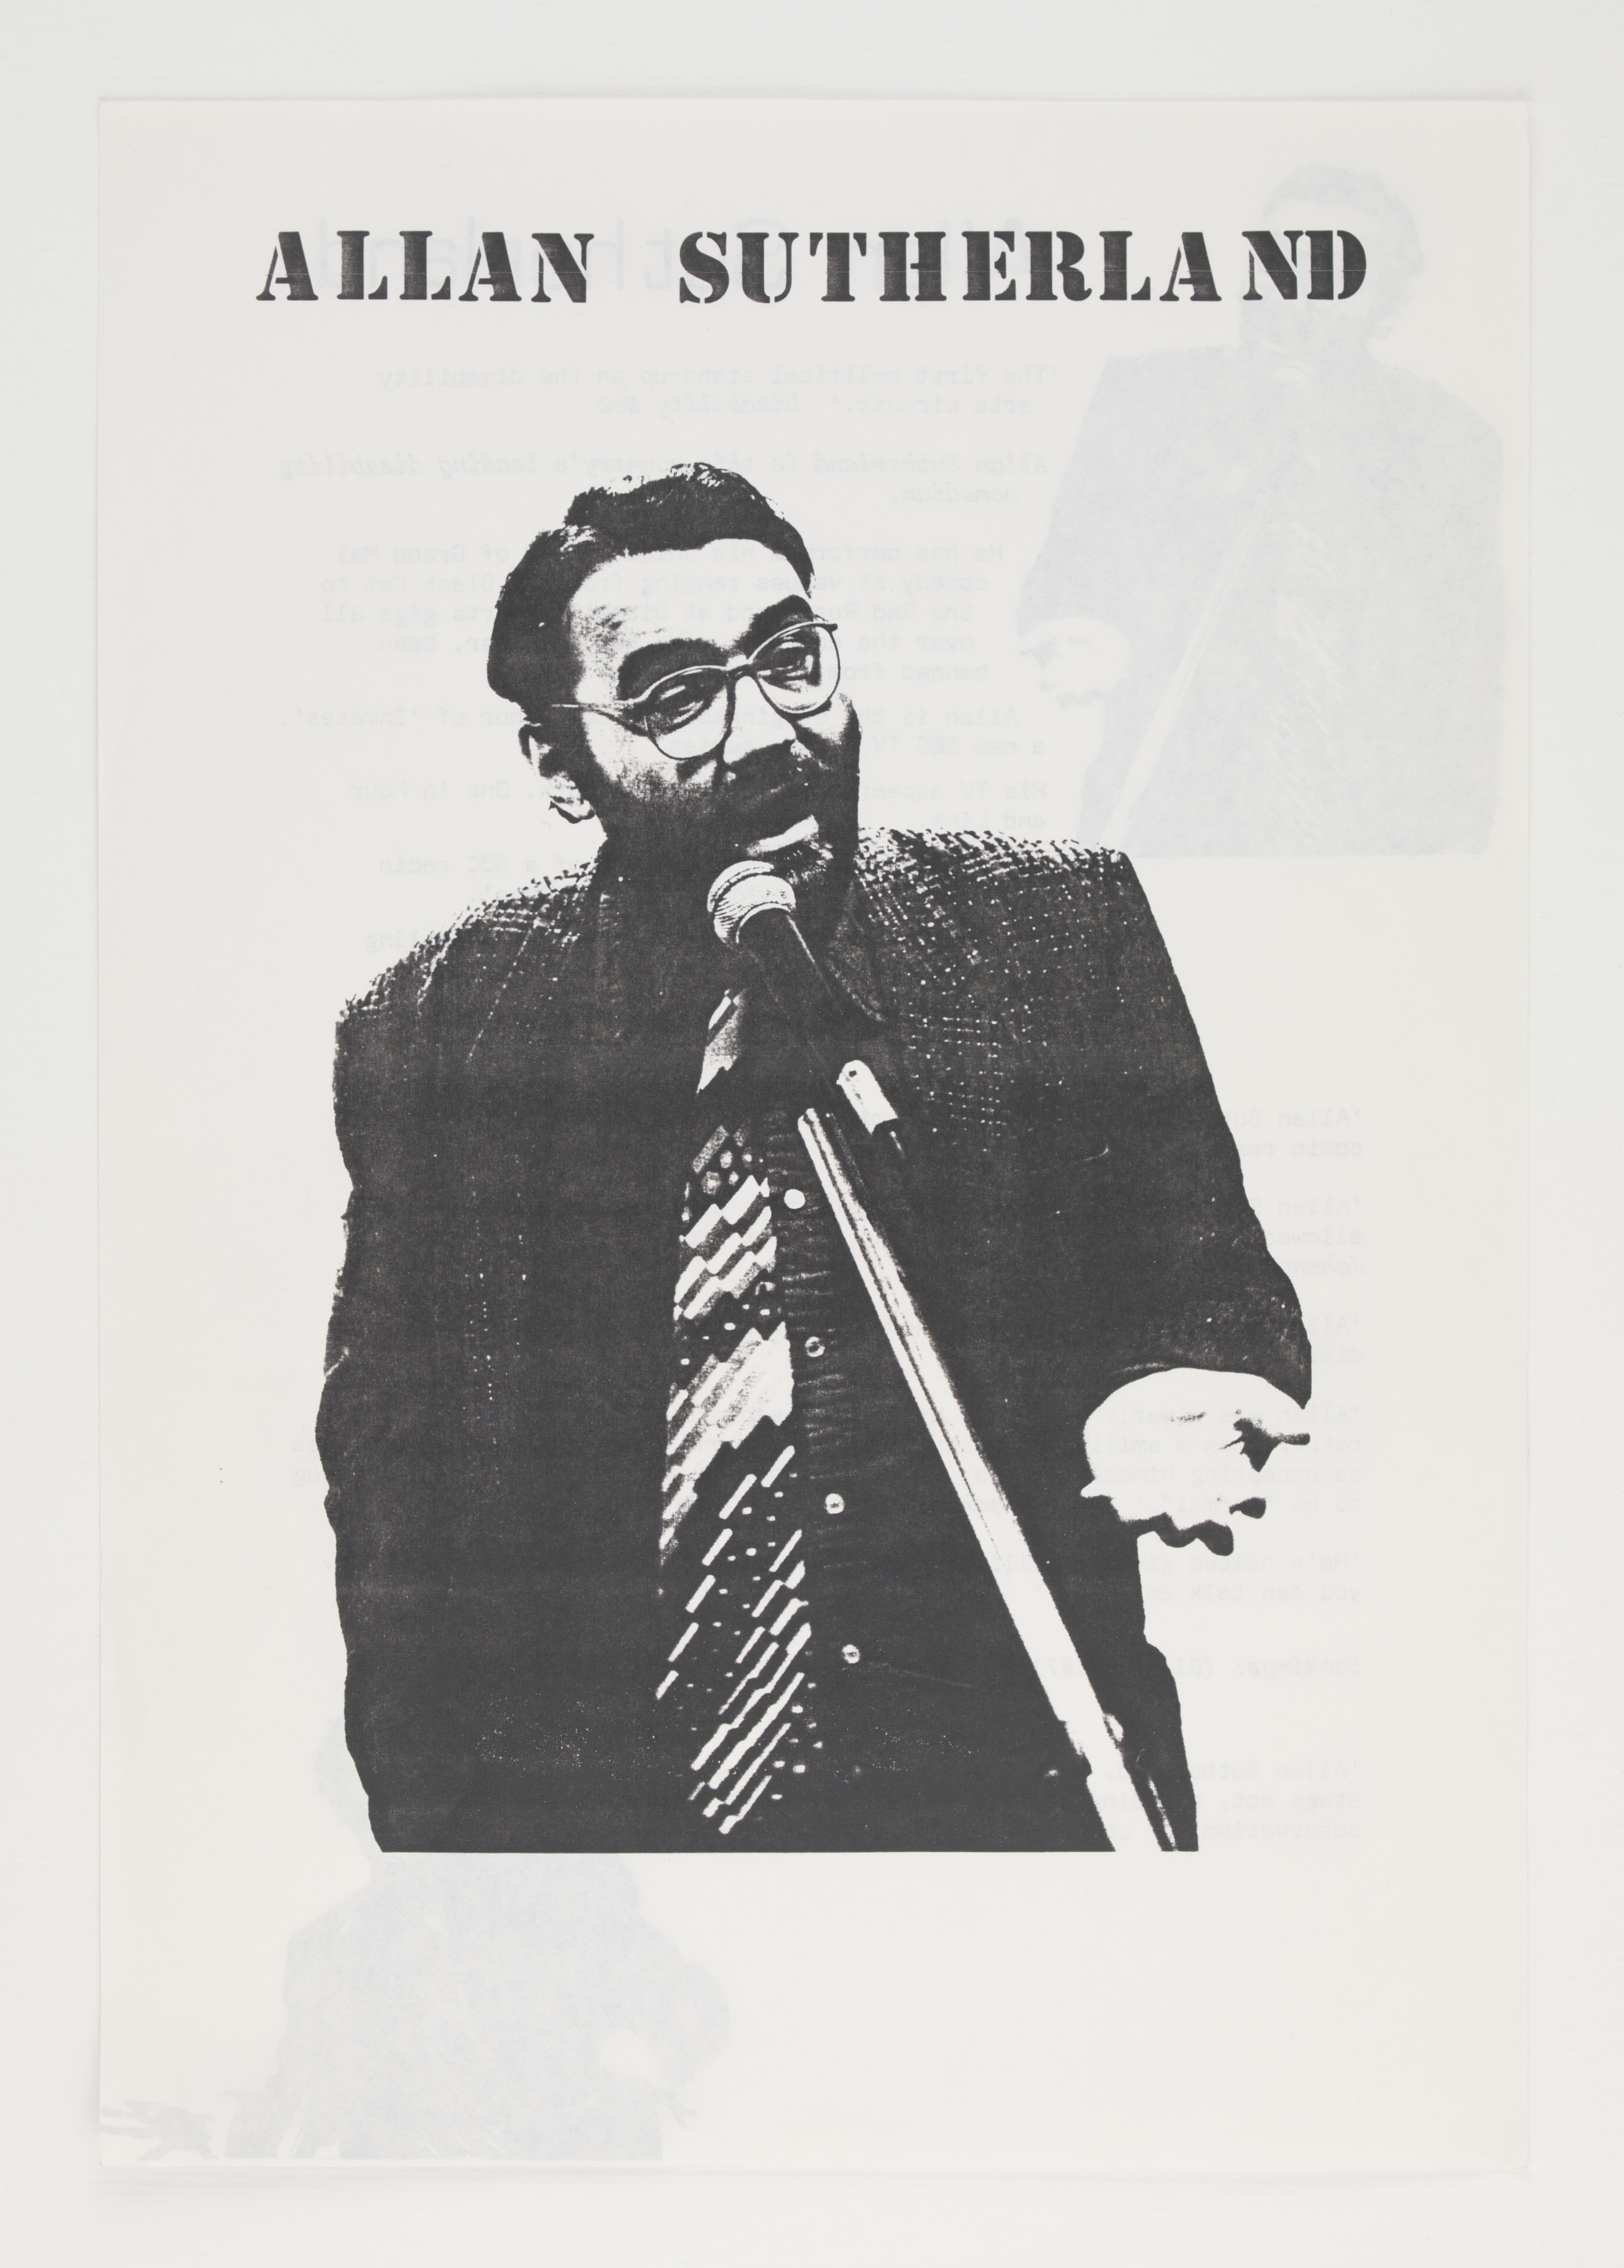 Black and white photo of a man laughing into a microphone against a white background. It looks like a poster for stand-up comedy.